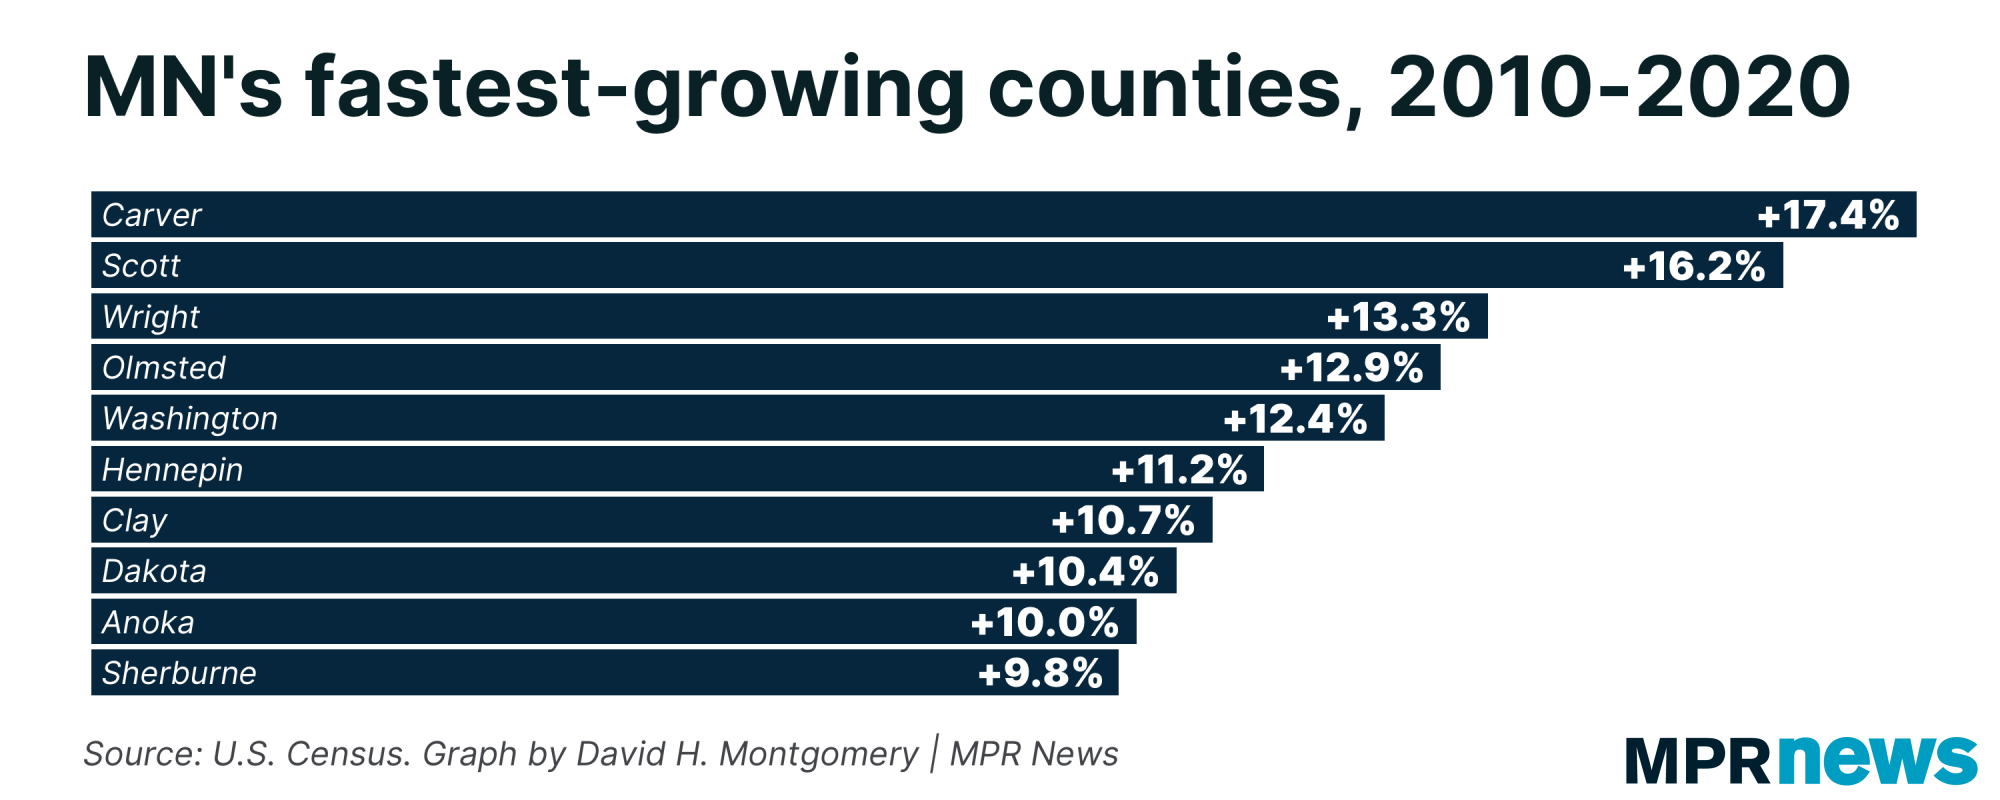 mn's fastest-growing counties, 2010-2020